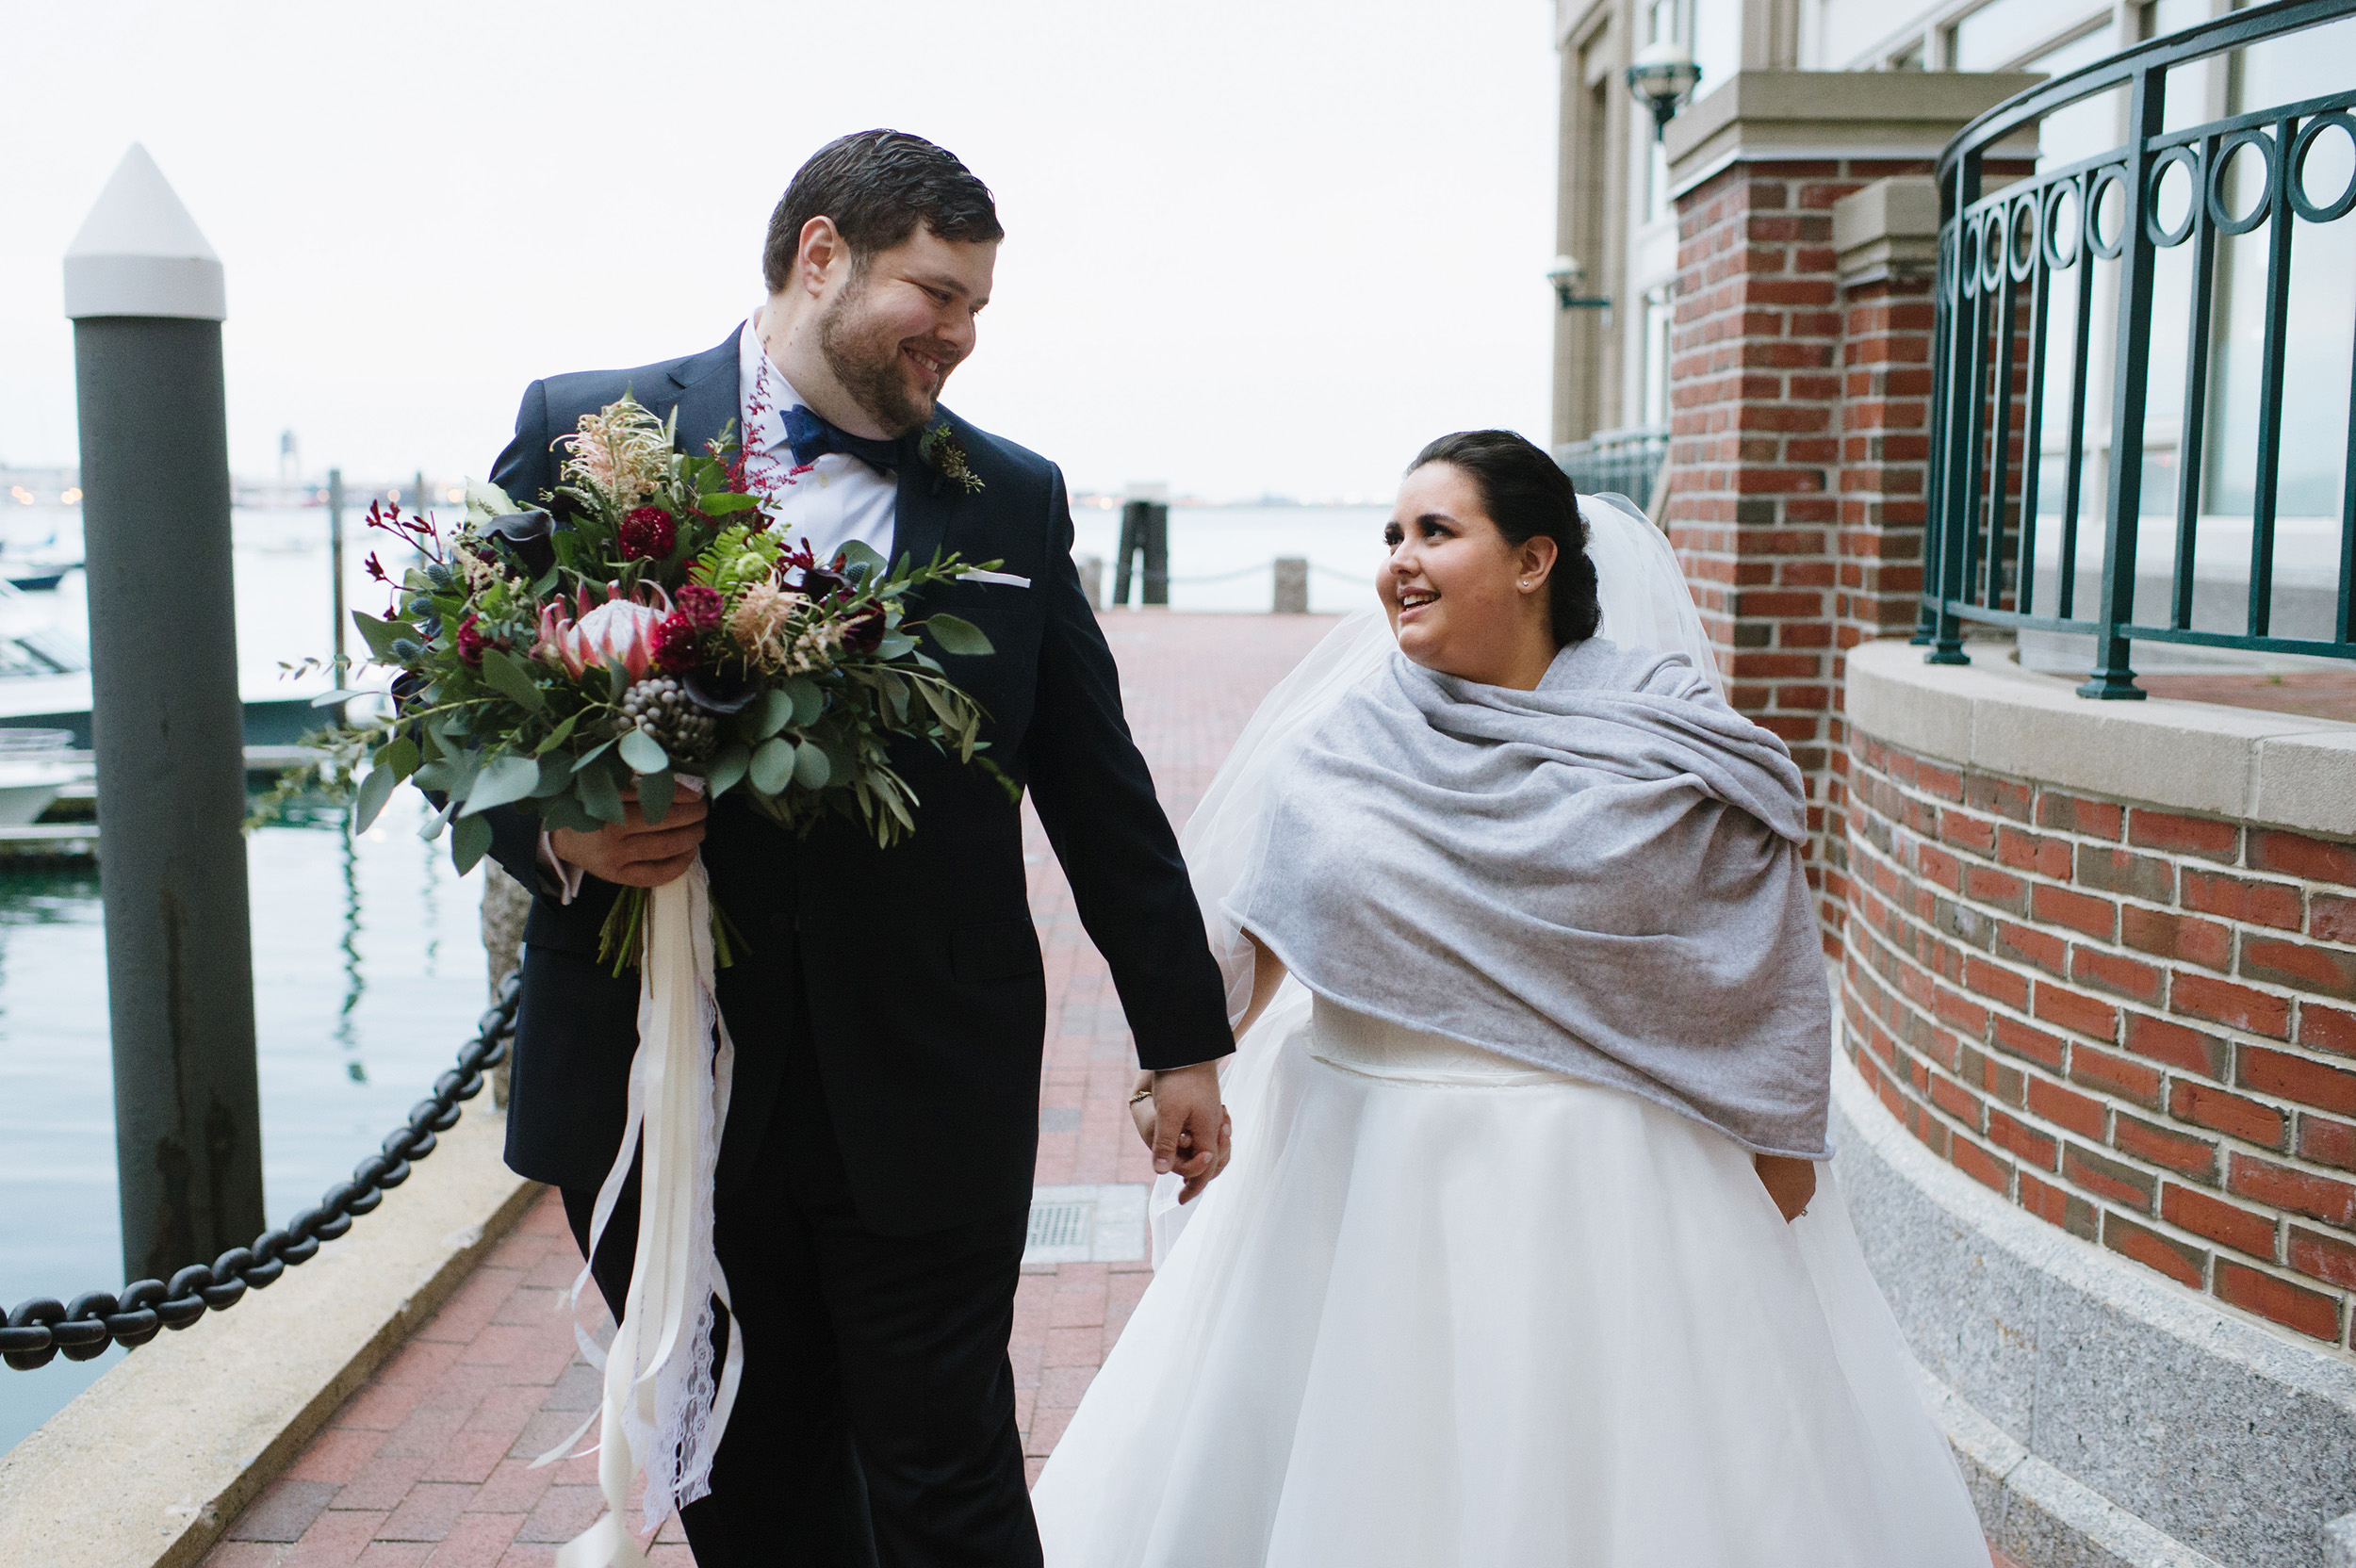 Couple walking and smiling at the Boston Waterfront on their wedding day.